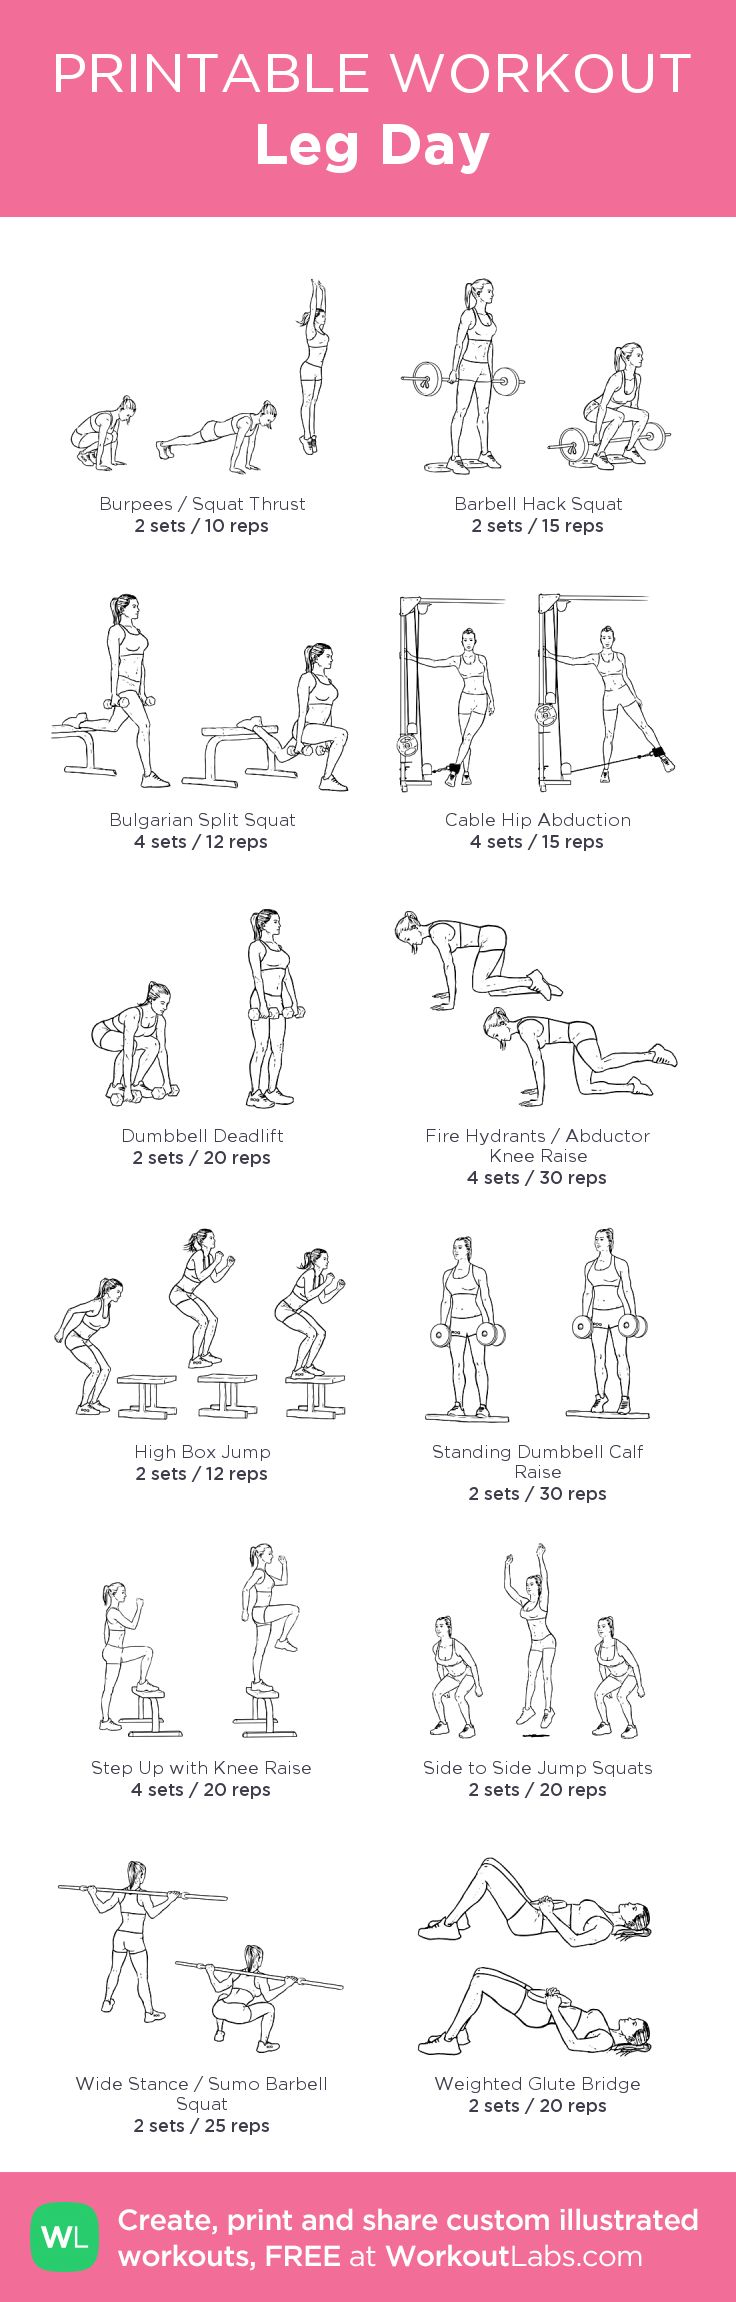 Leg Day: my visual workout created at WorkoutLabs.com • Click through to customize and download as a FREE PDF! #customworkout